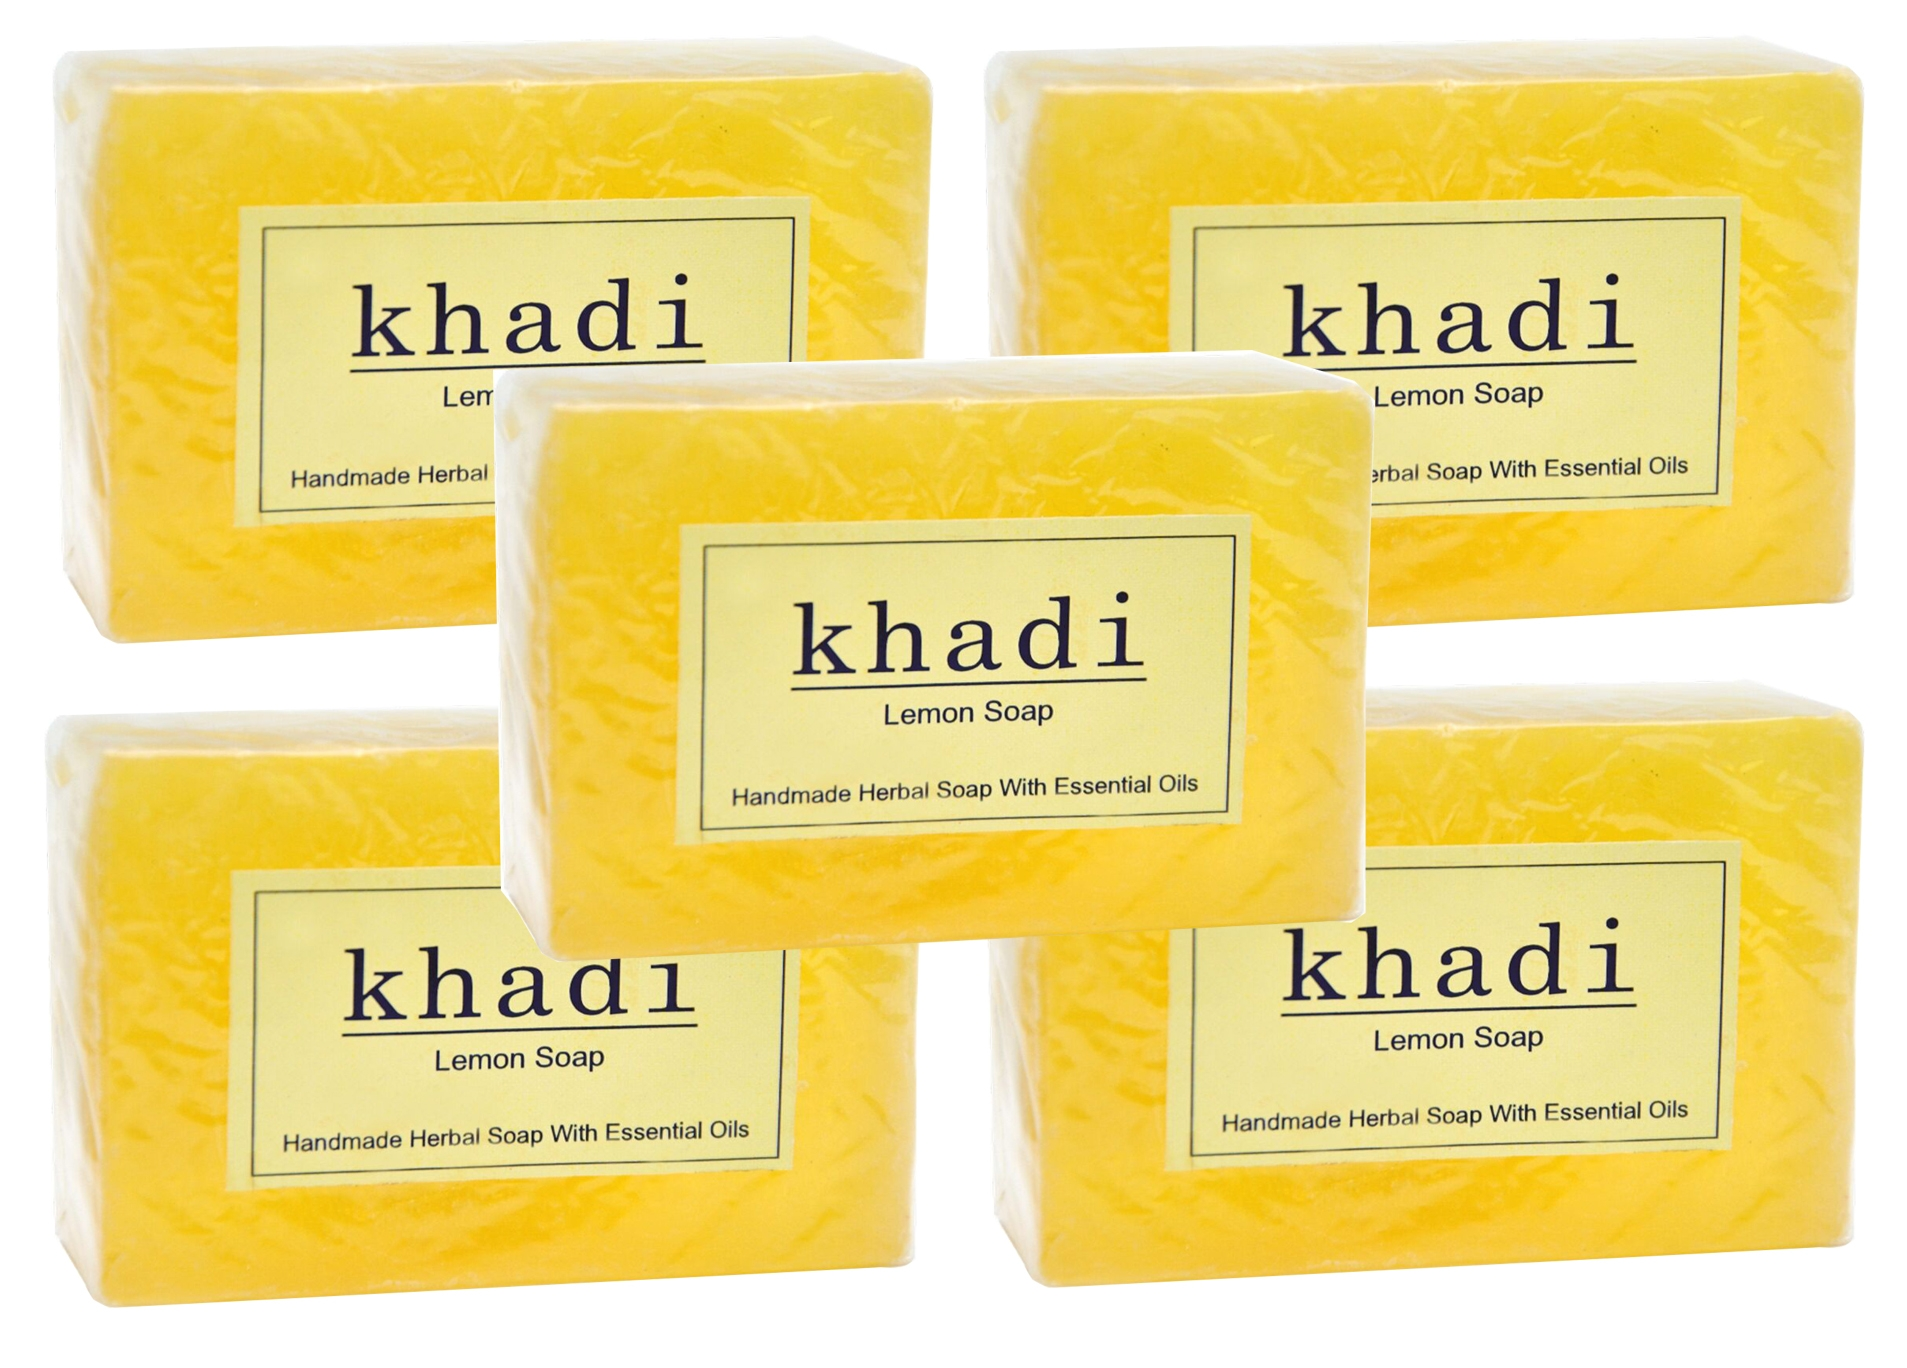 Khadi Lemon Soap